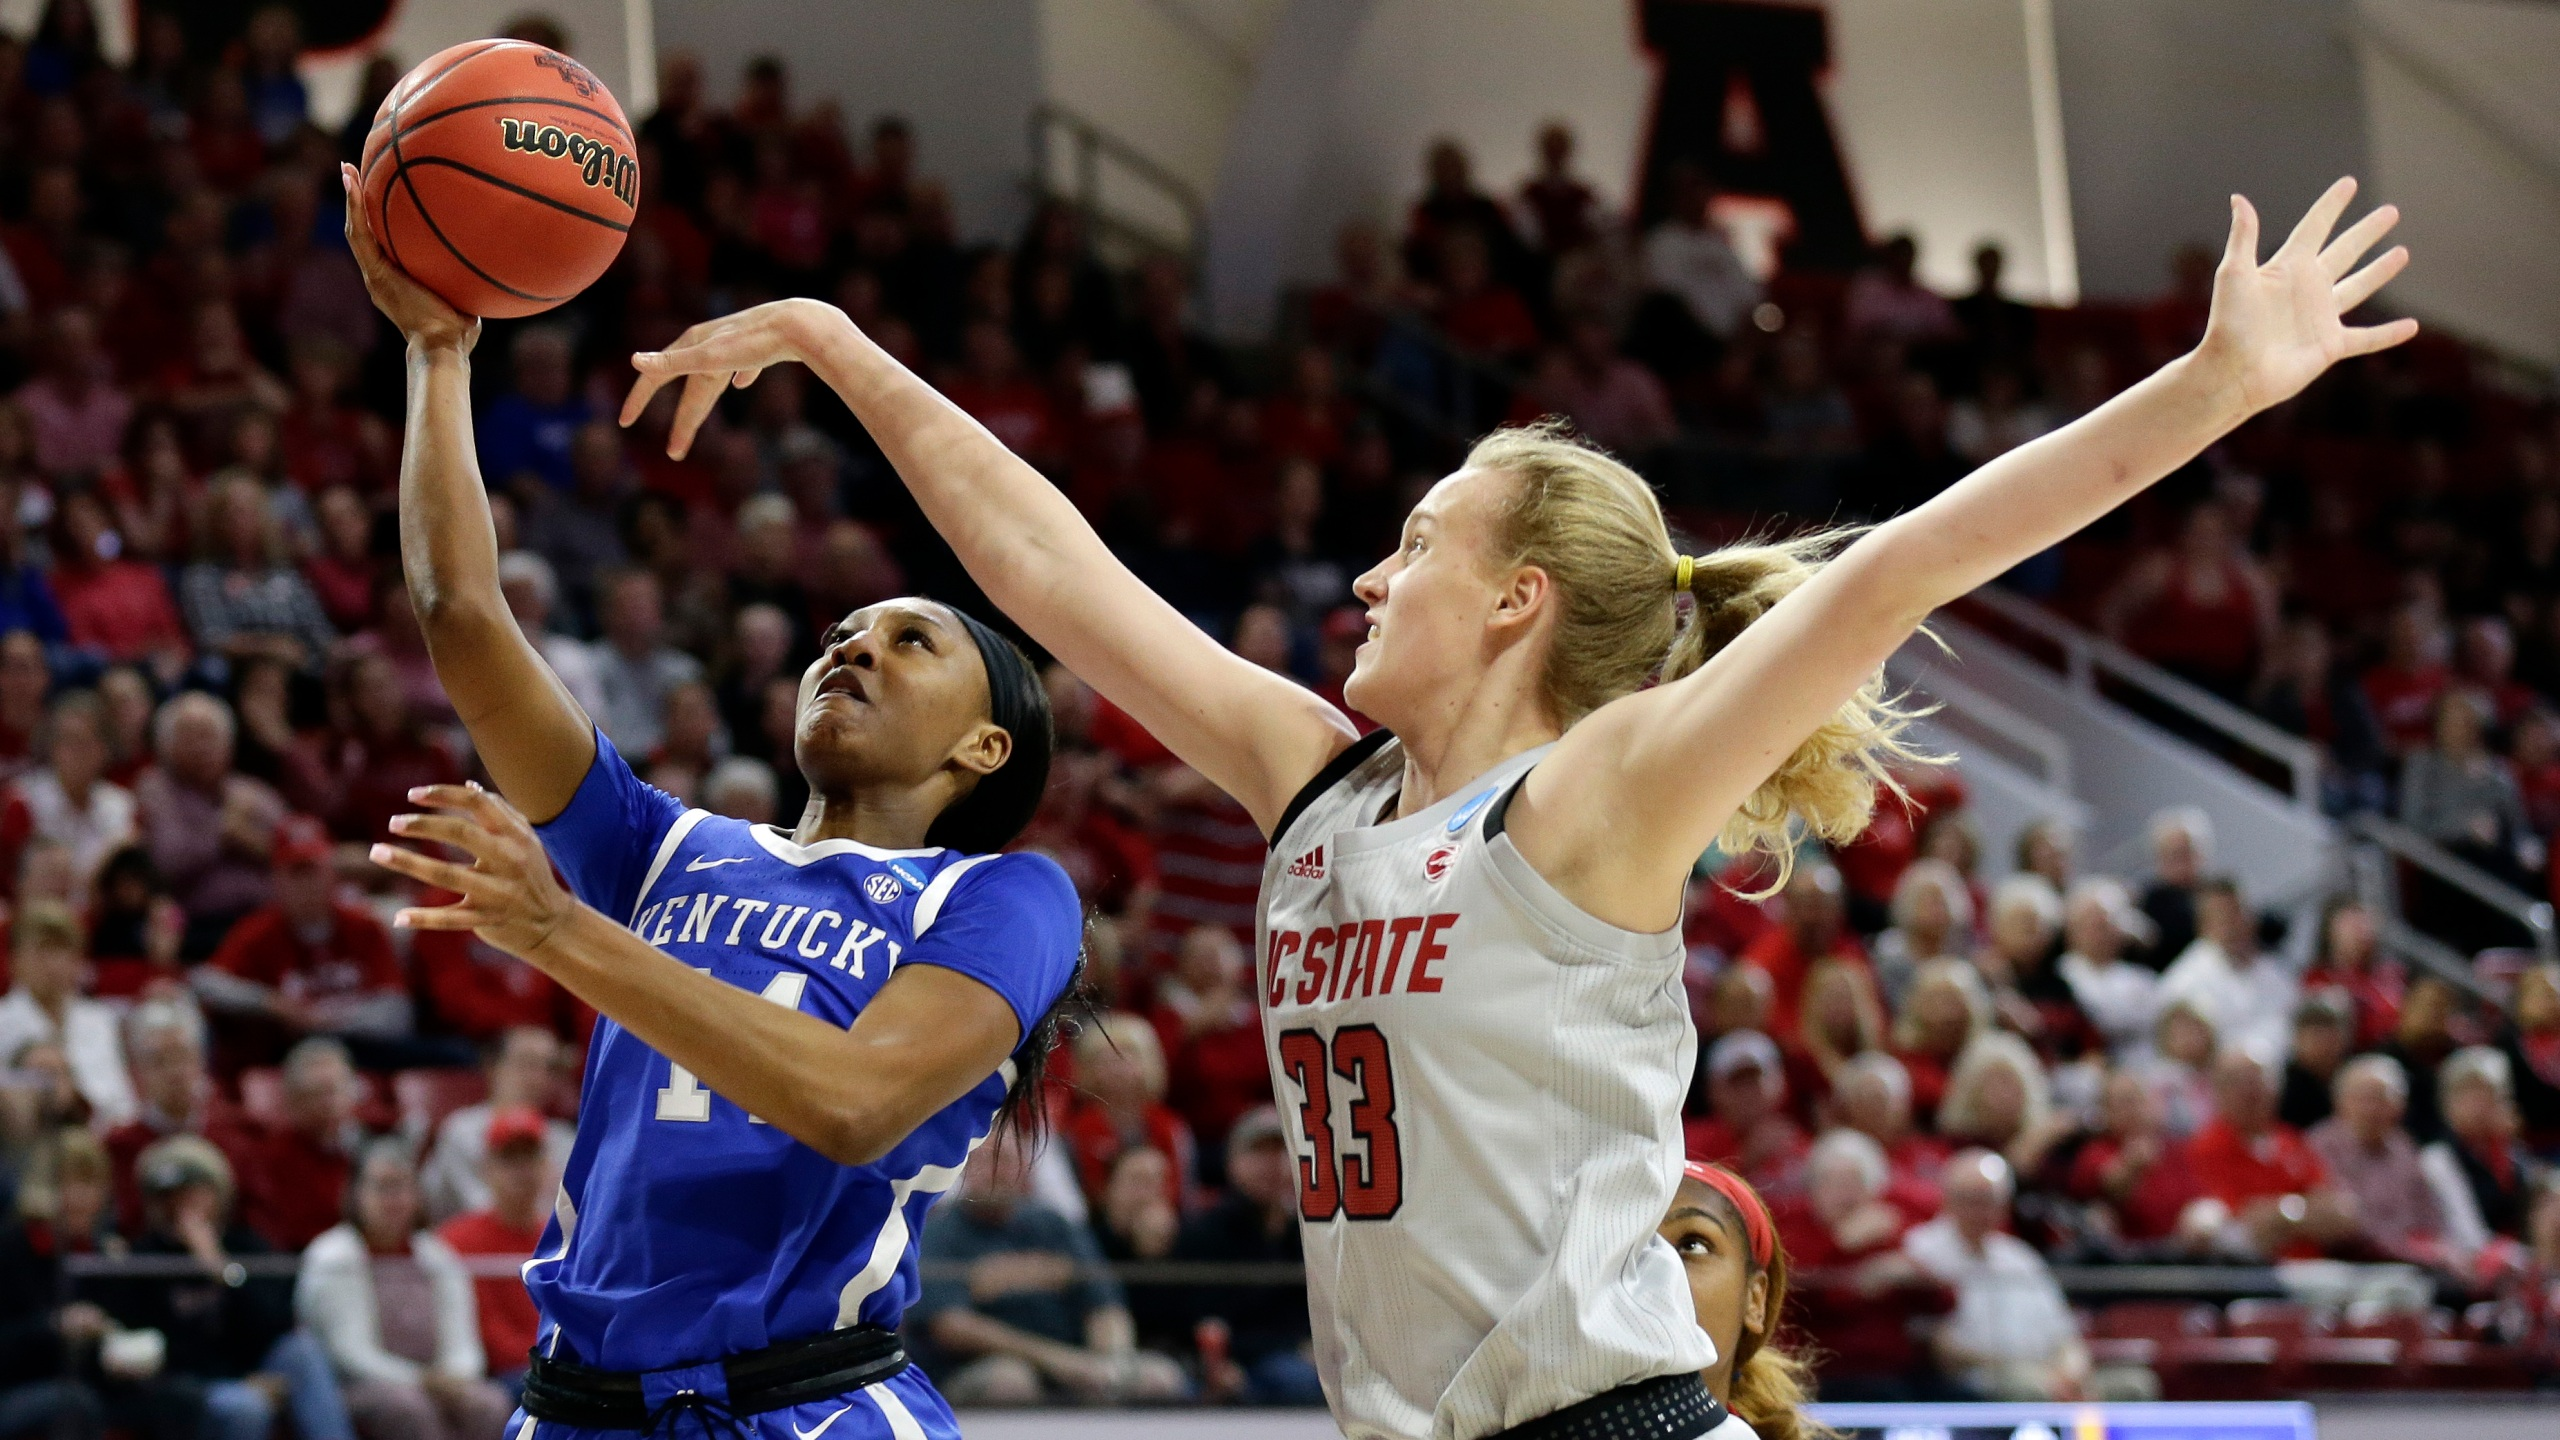 NCAA_Kentucky_NC_State_Basketball_26109-159532.jpg06429842